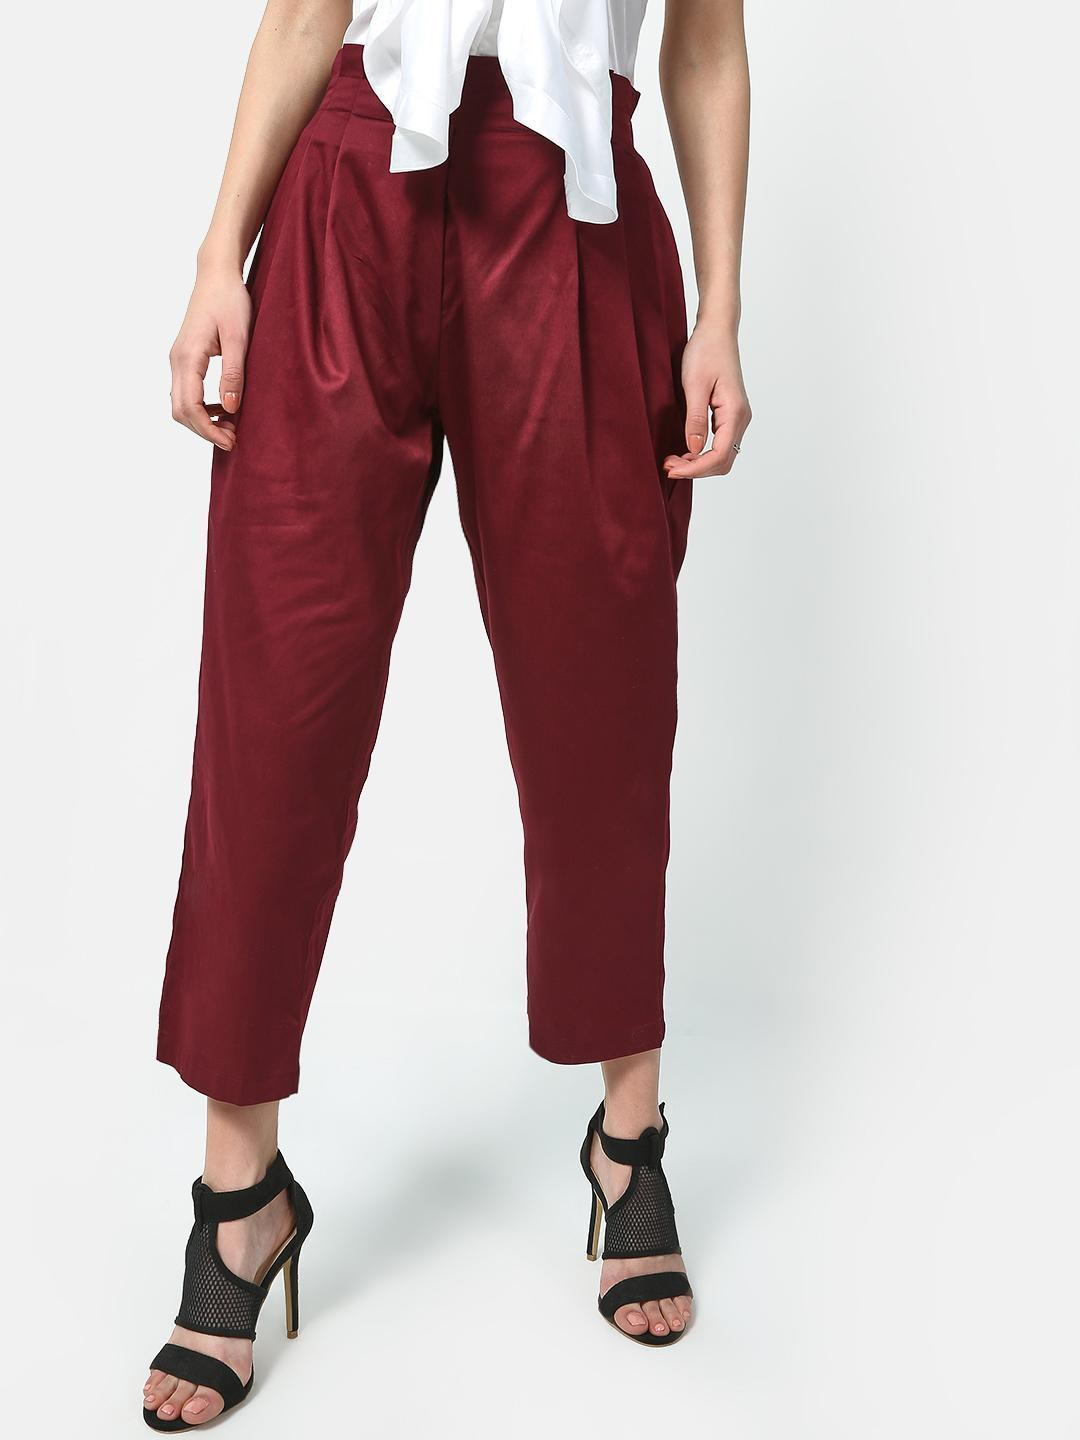 ATTIC SALT Mahogany Brown Paperbag Cropped Trousers 1